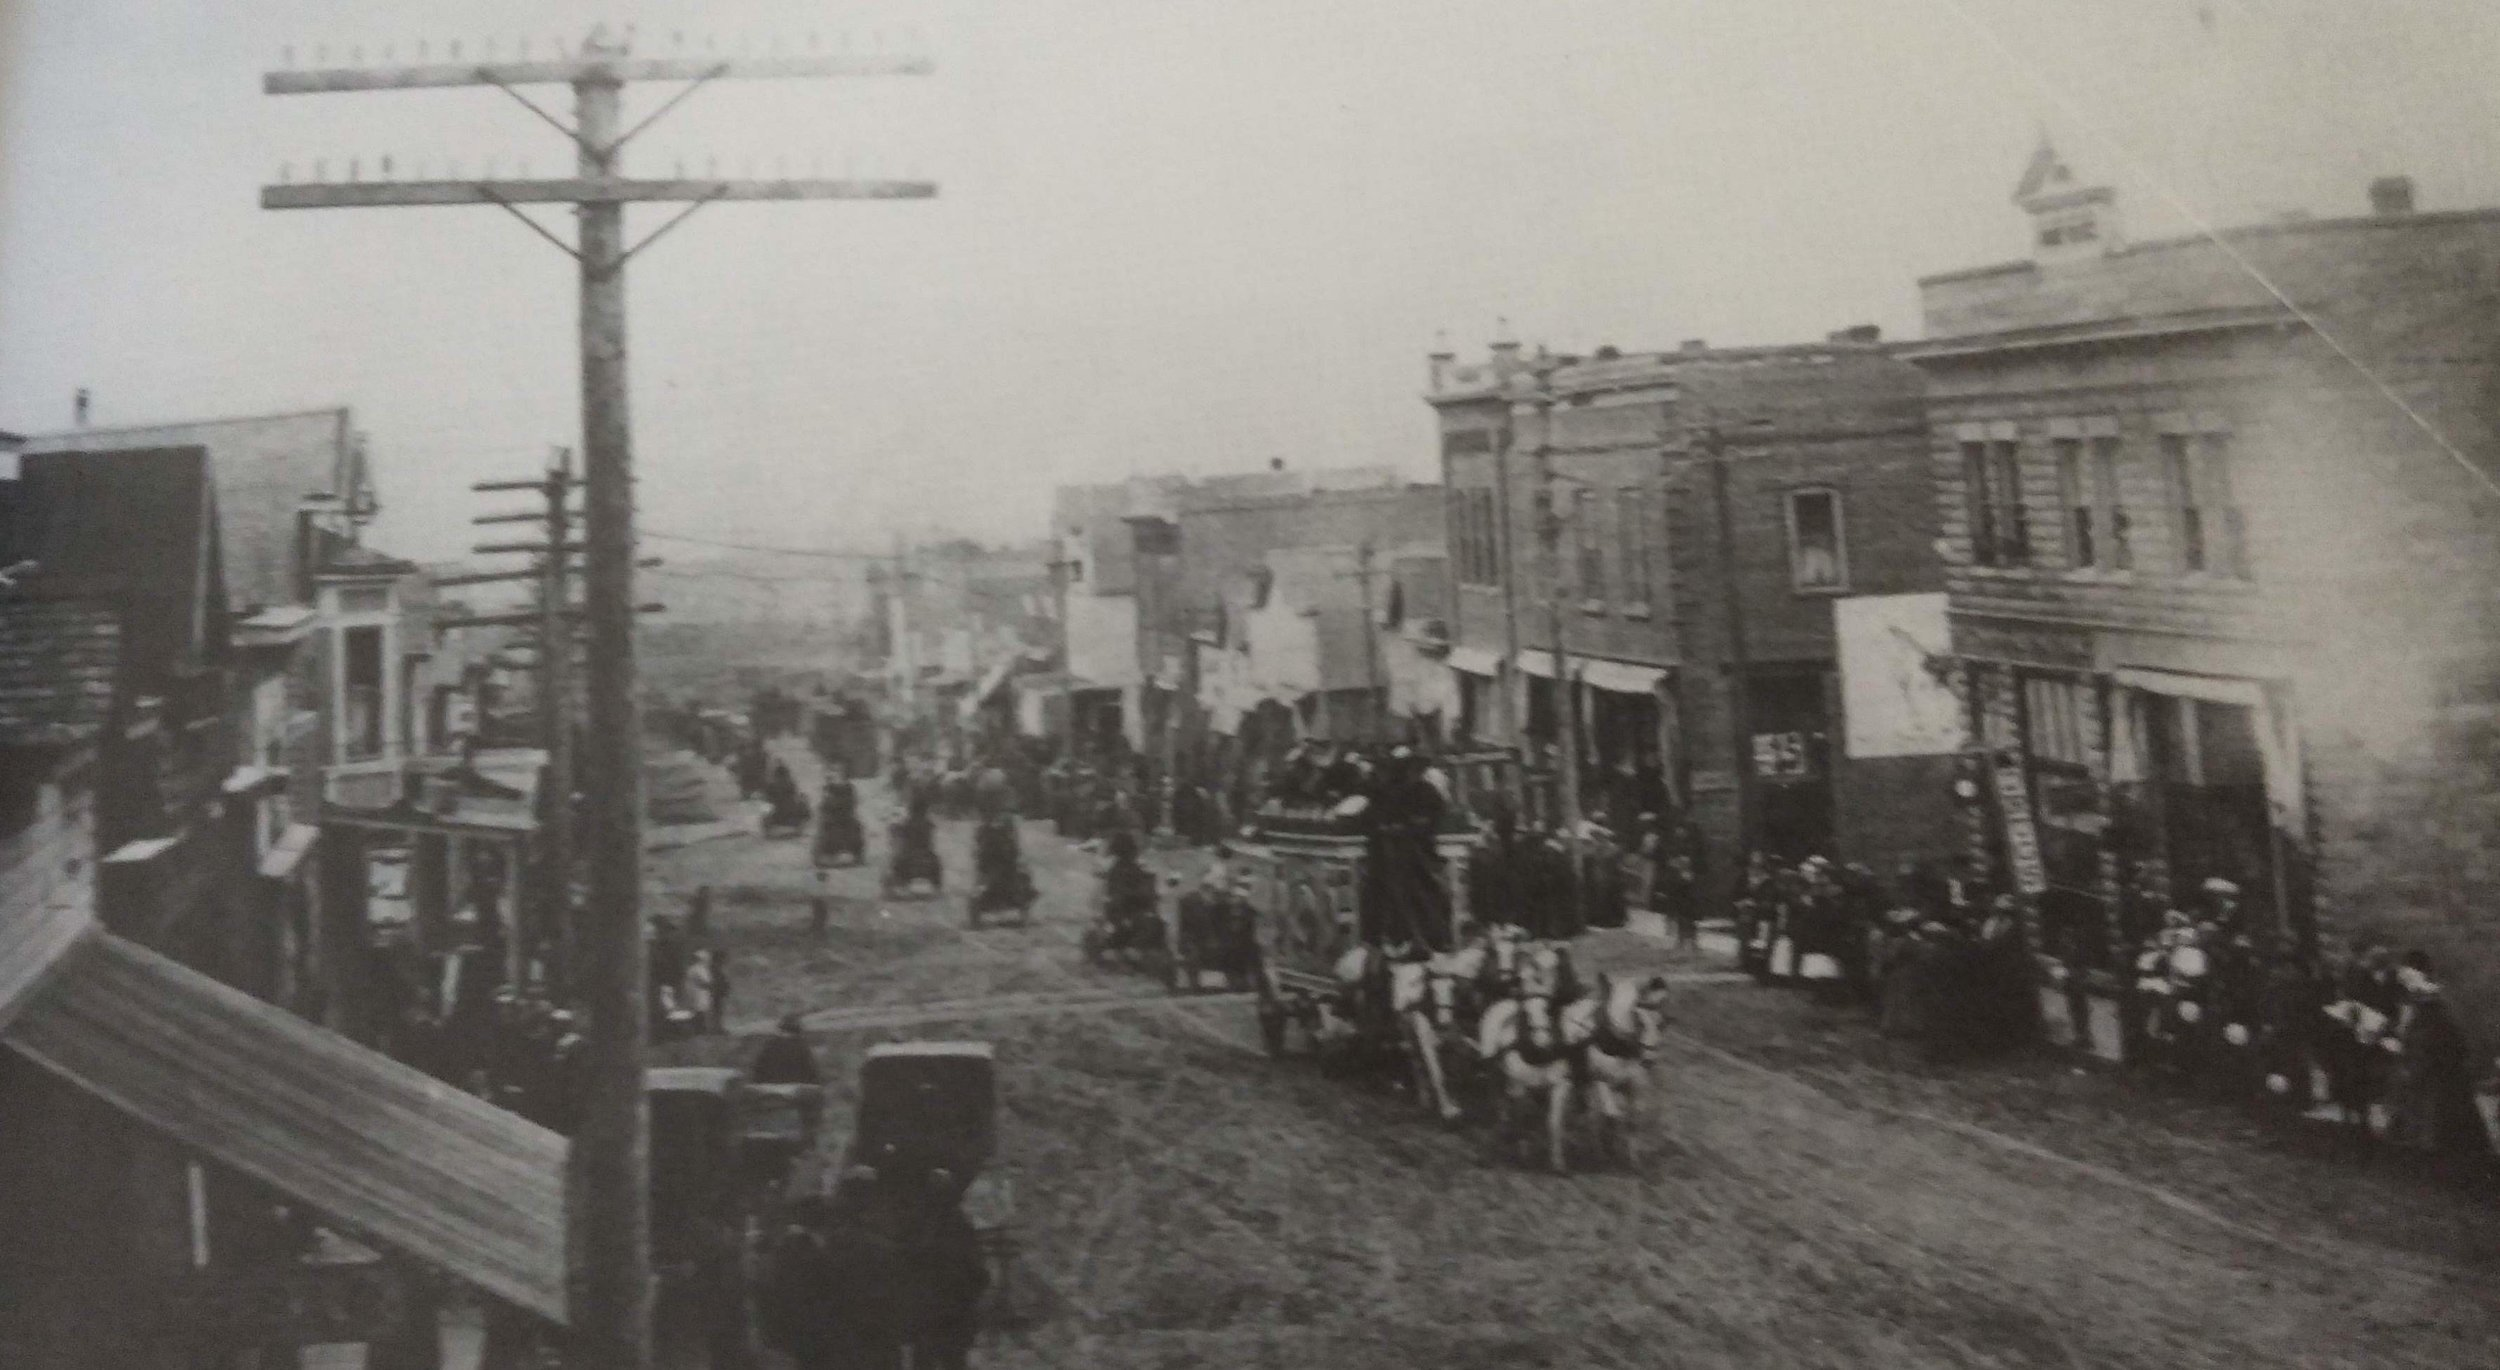 The L.G. Barnes Circus parading up Main Street in May of 1912. The first brick building on the right is the current home of locally beloved Country Flowers  @countryflowerscondon  located directly across the street from present day Hotel Condon.